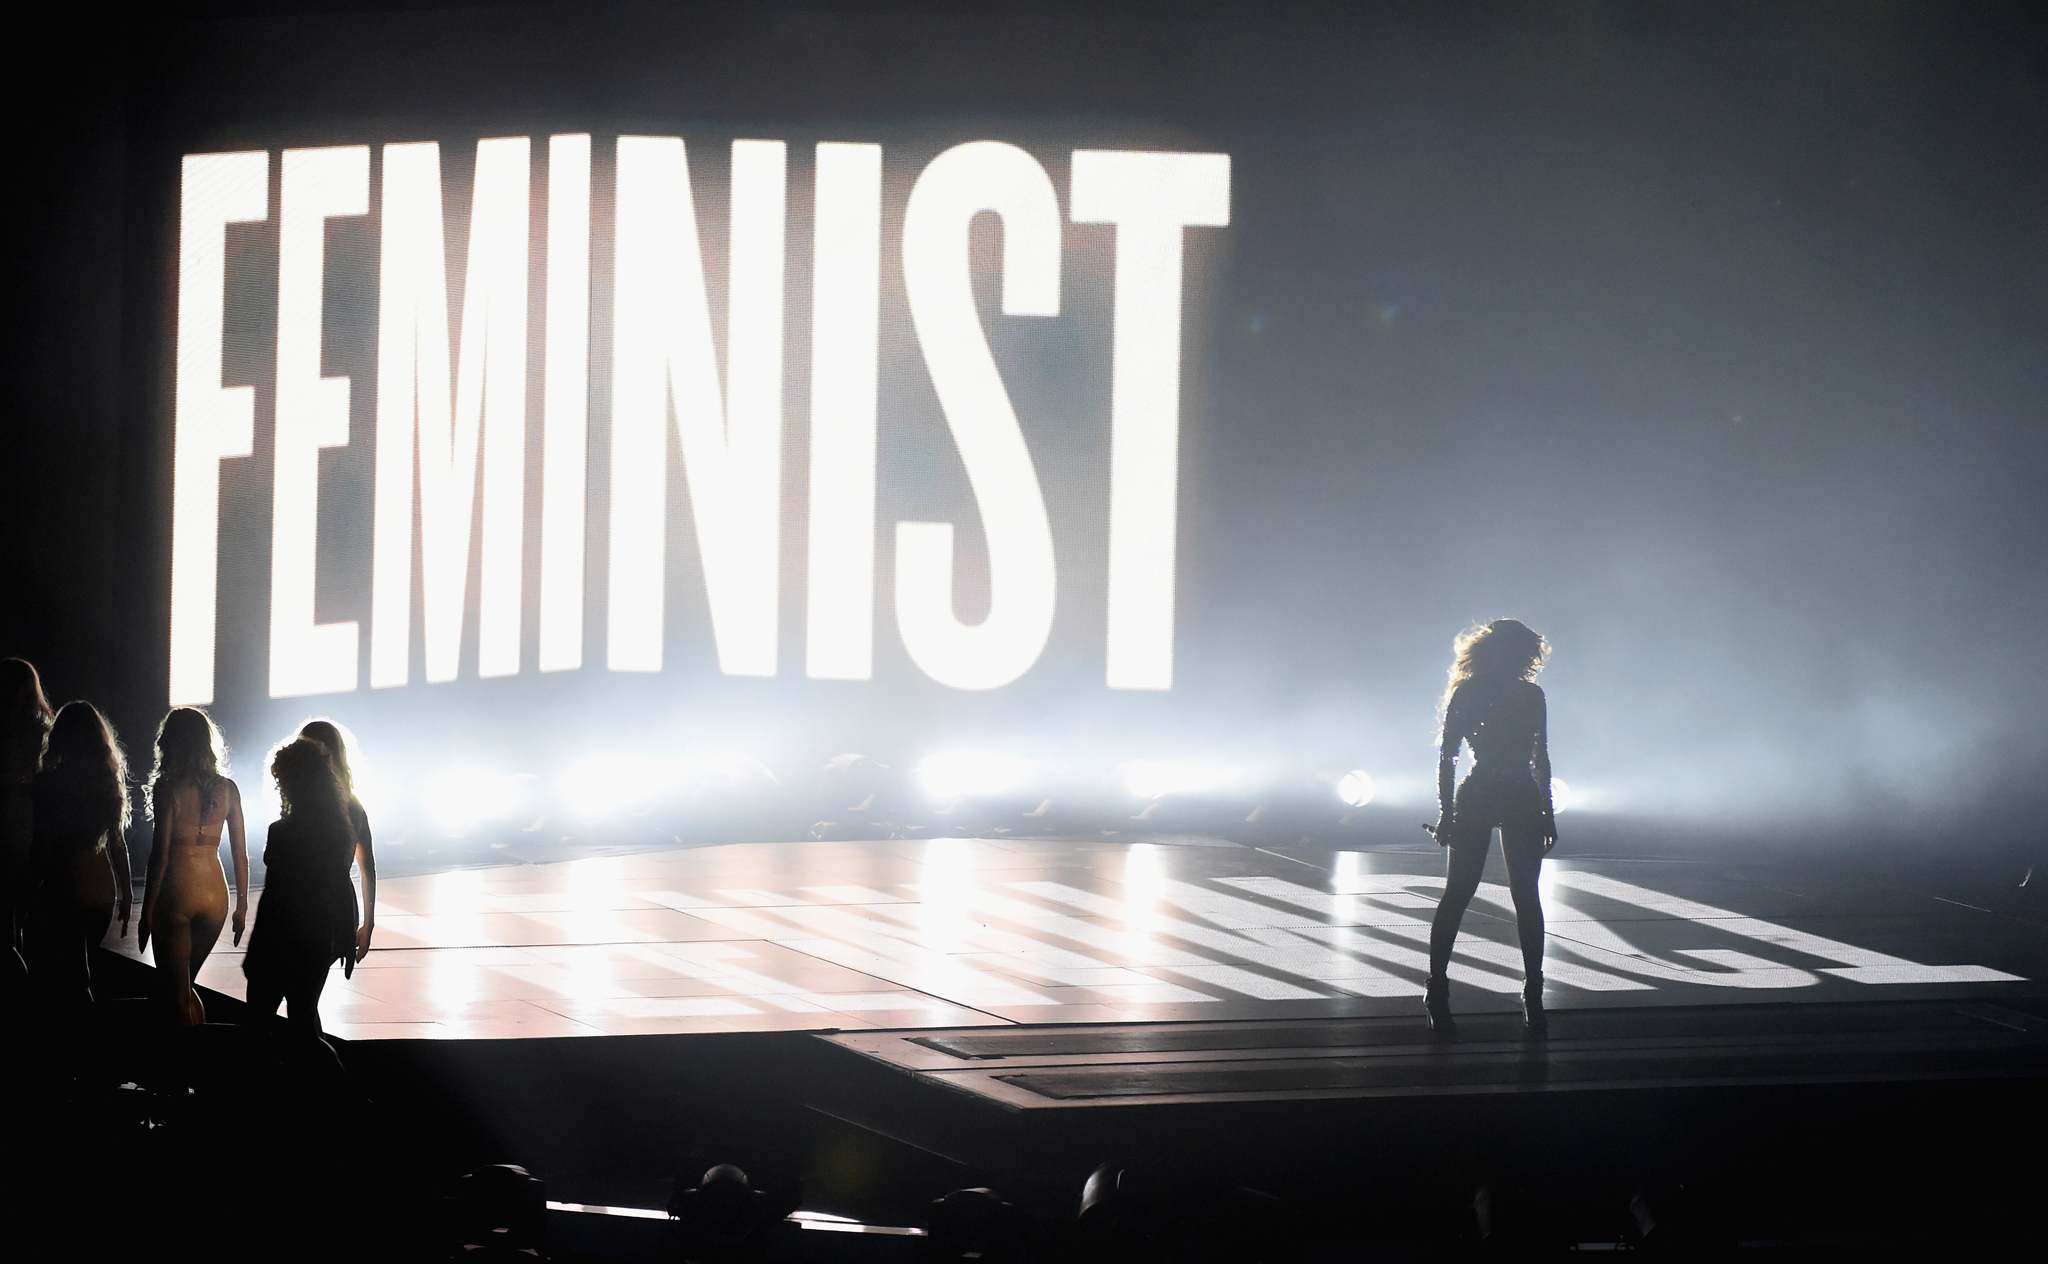 Beyonce on stage with the word 'Feminist' in lights